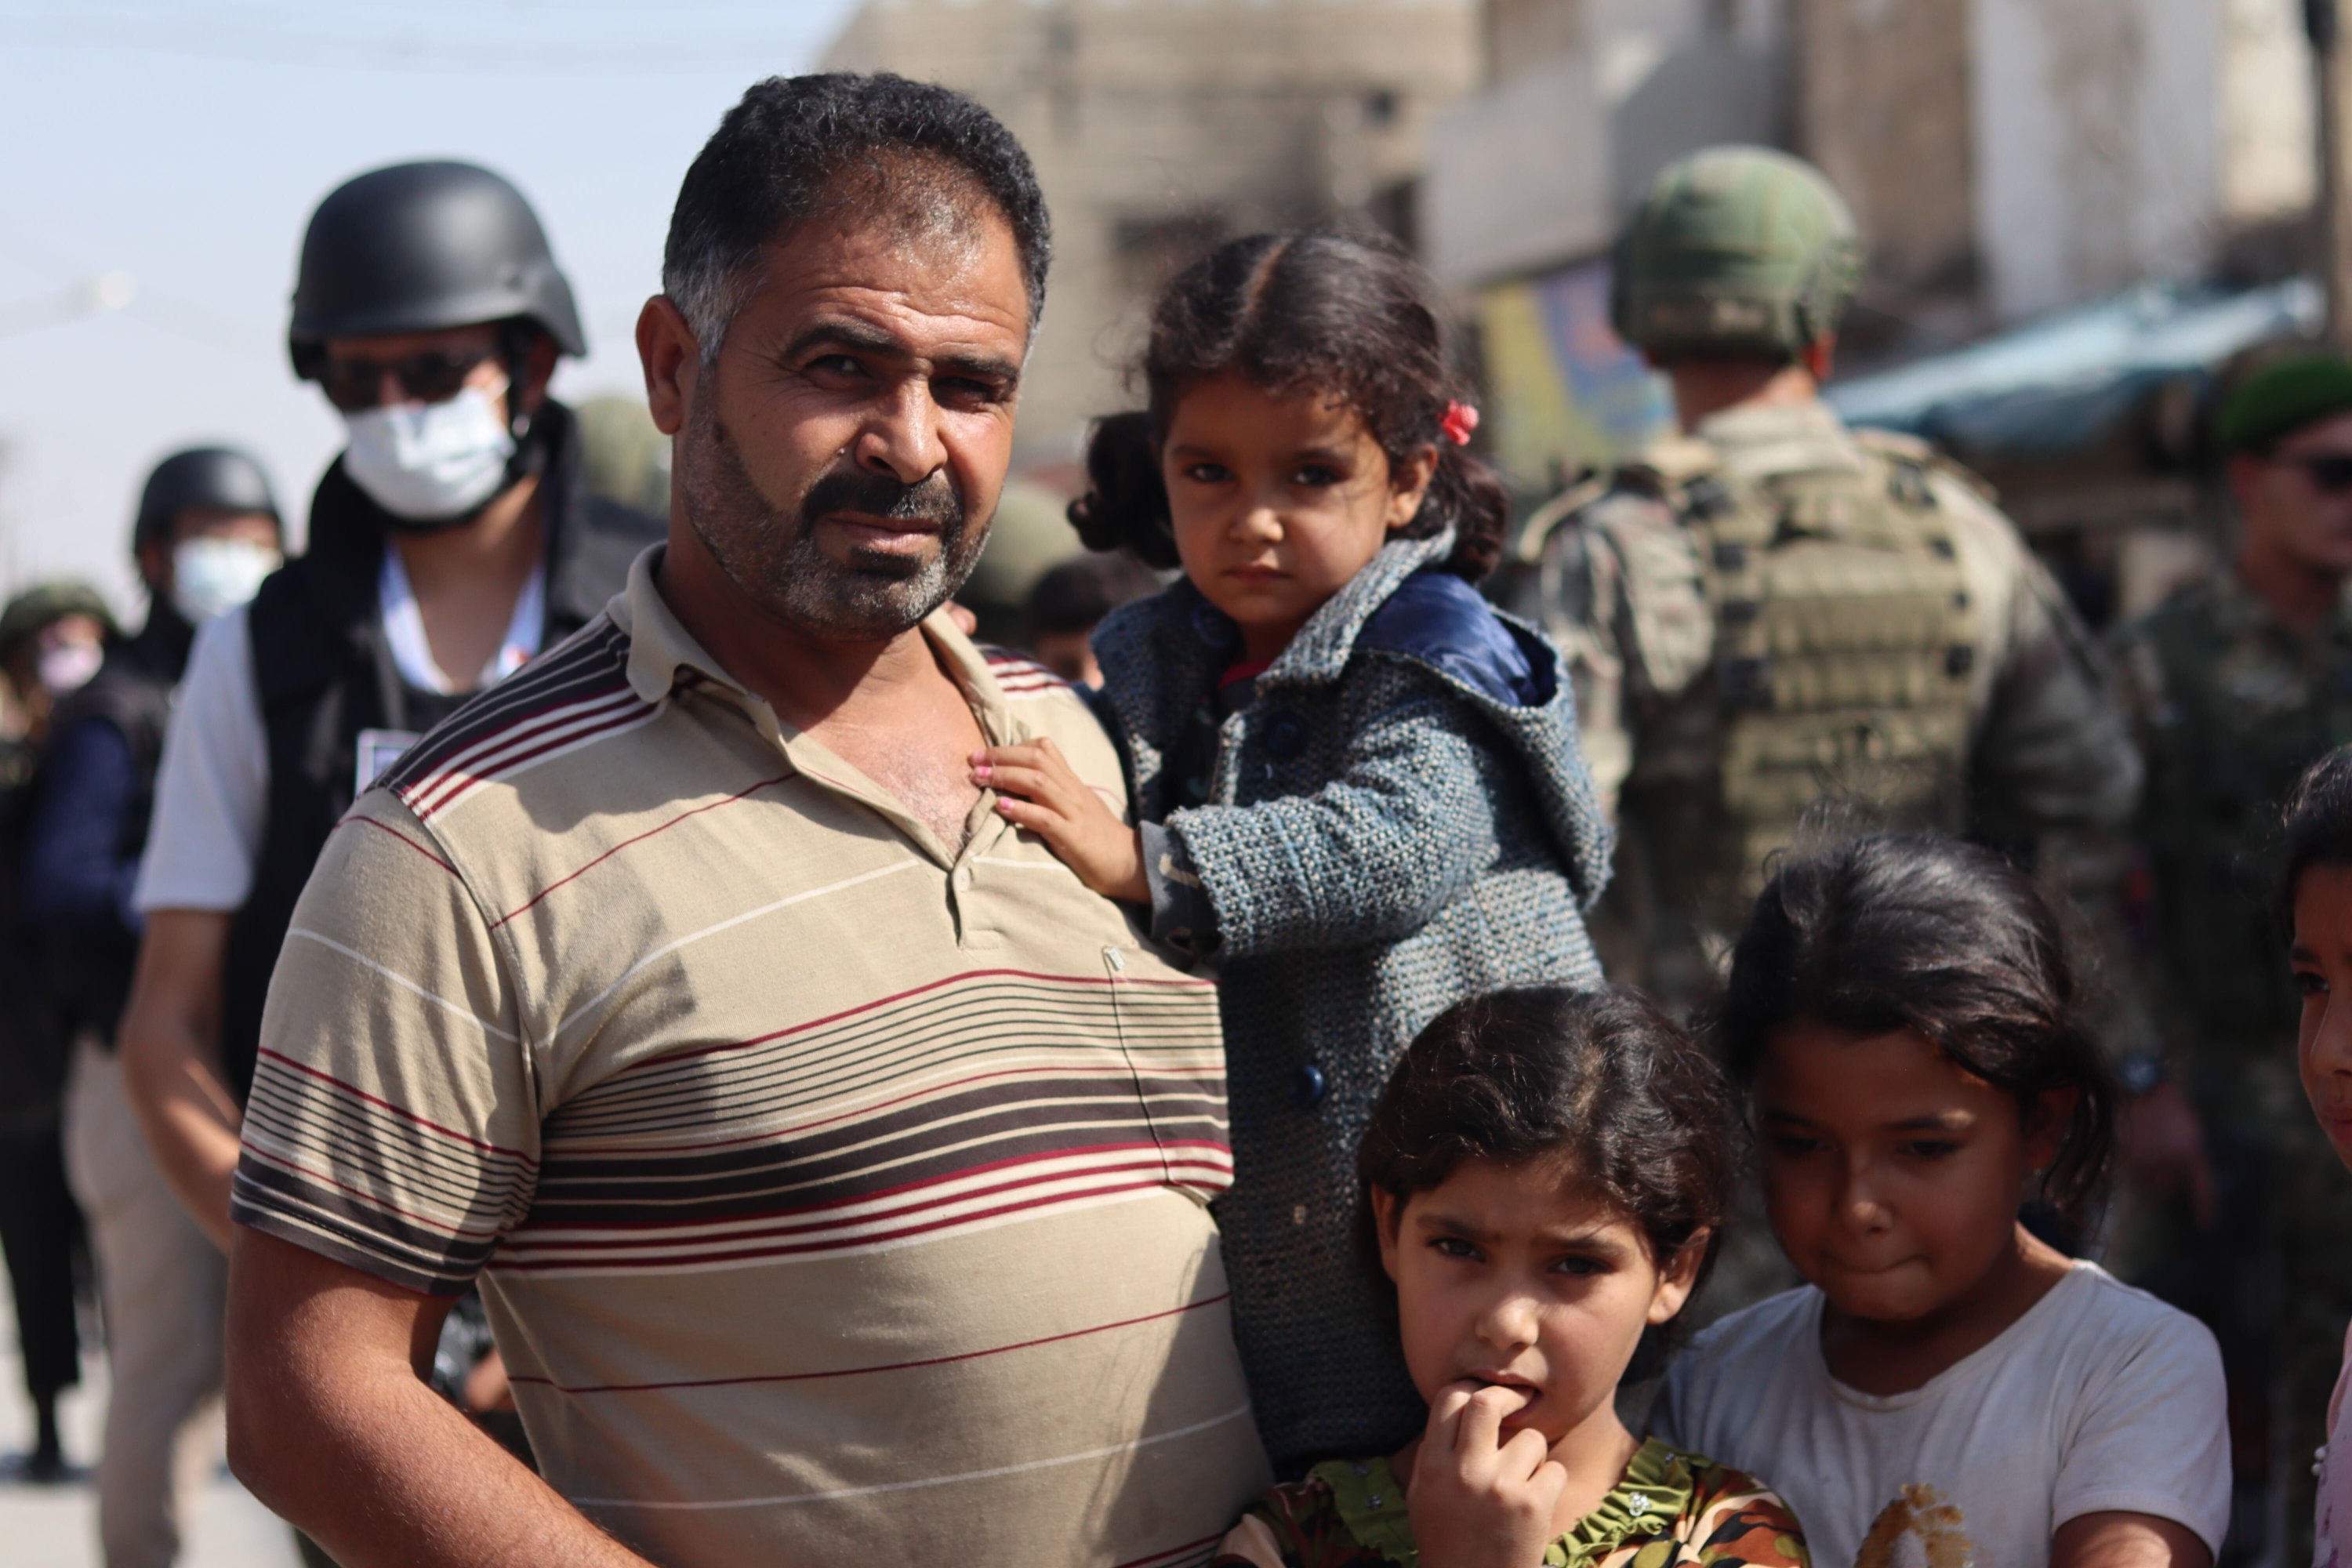 A man, with his four daughters, explains he is trying to get by and look after his children while his wife is in treatment in Turkey's Şanlıurfa province, Oct. 11, 2020. (Dilara Aslan)